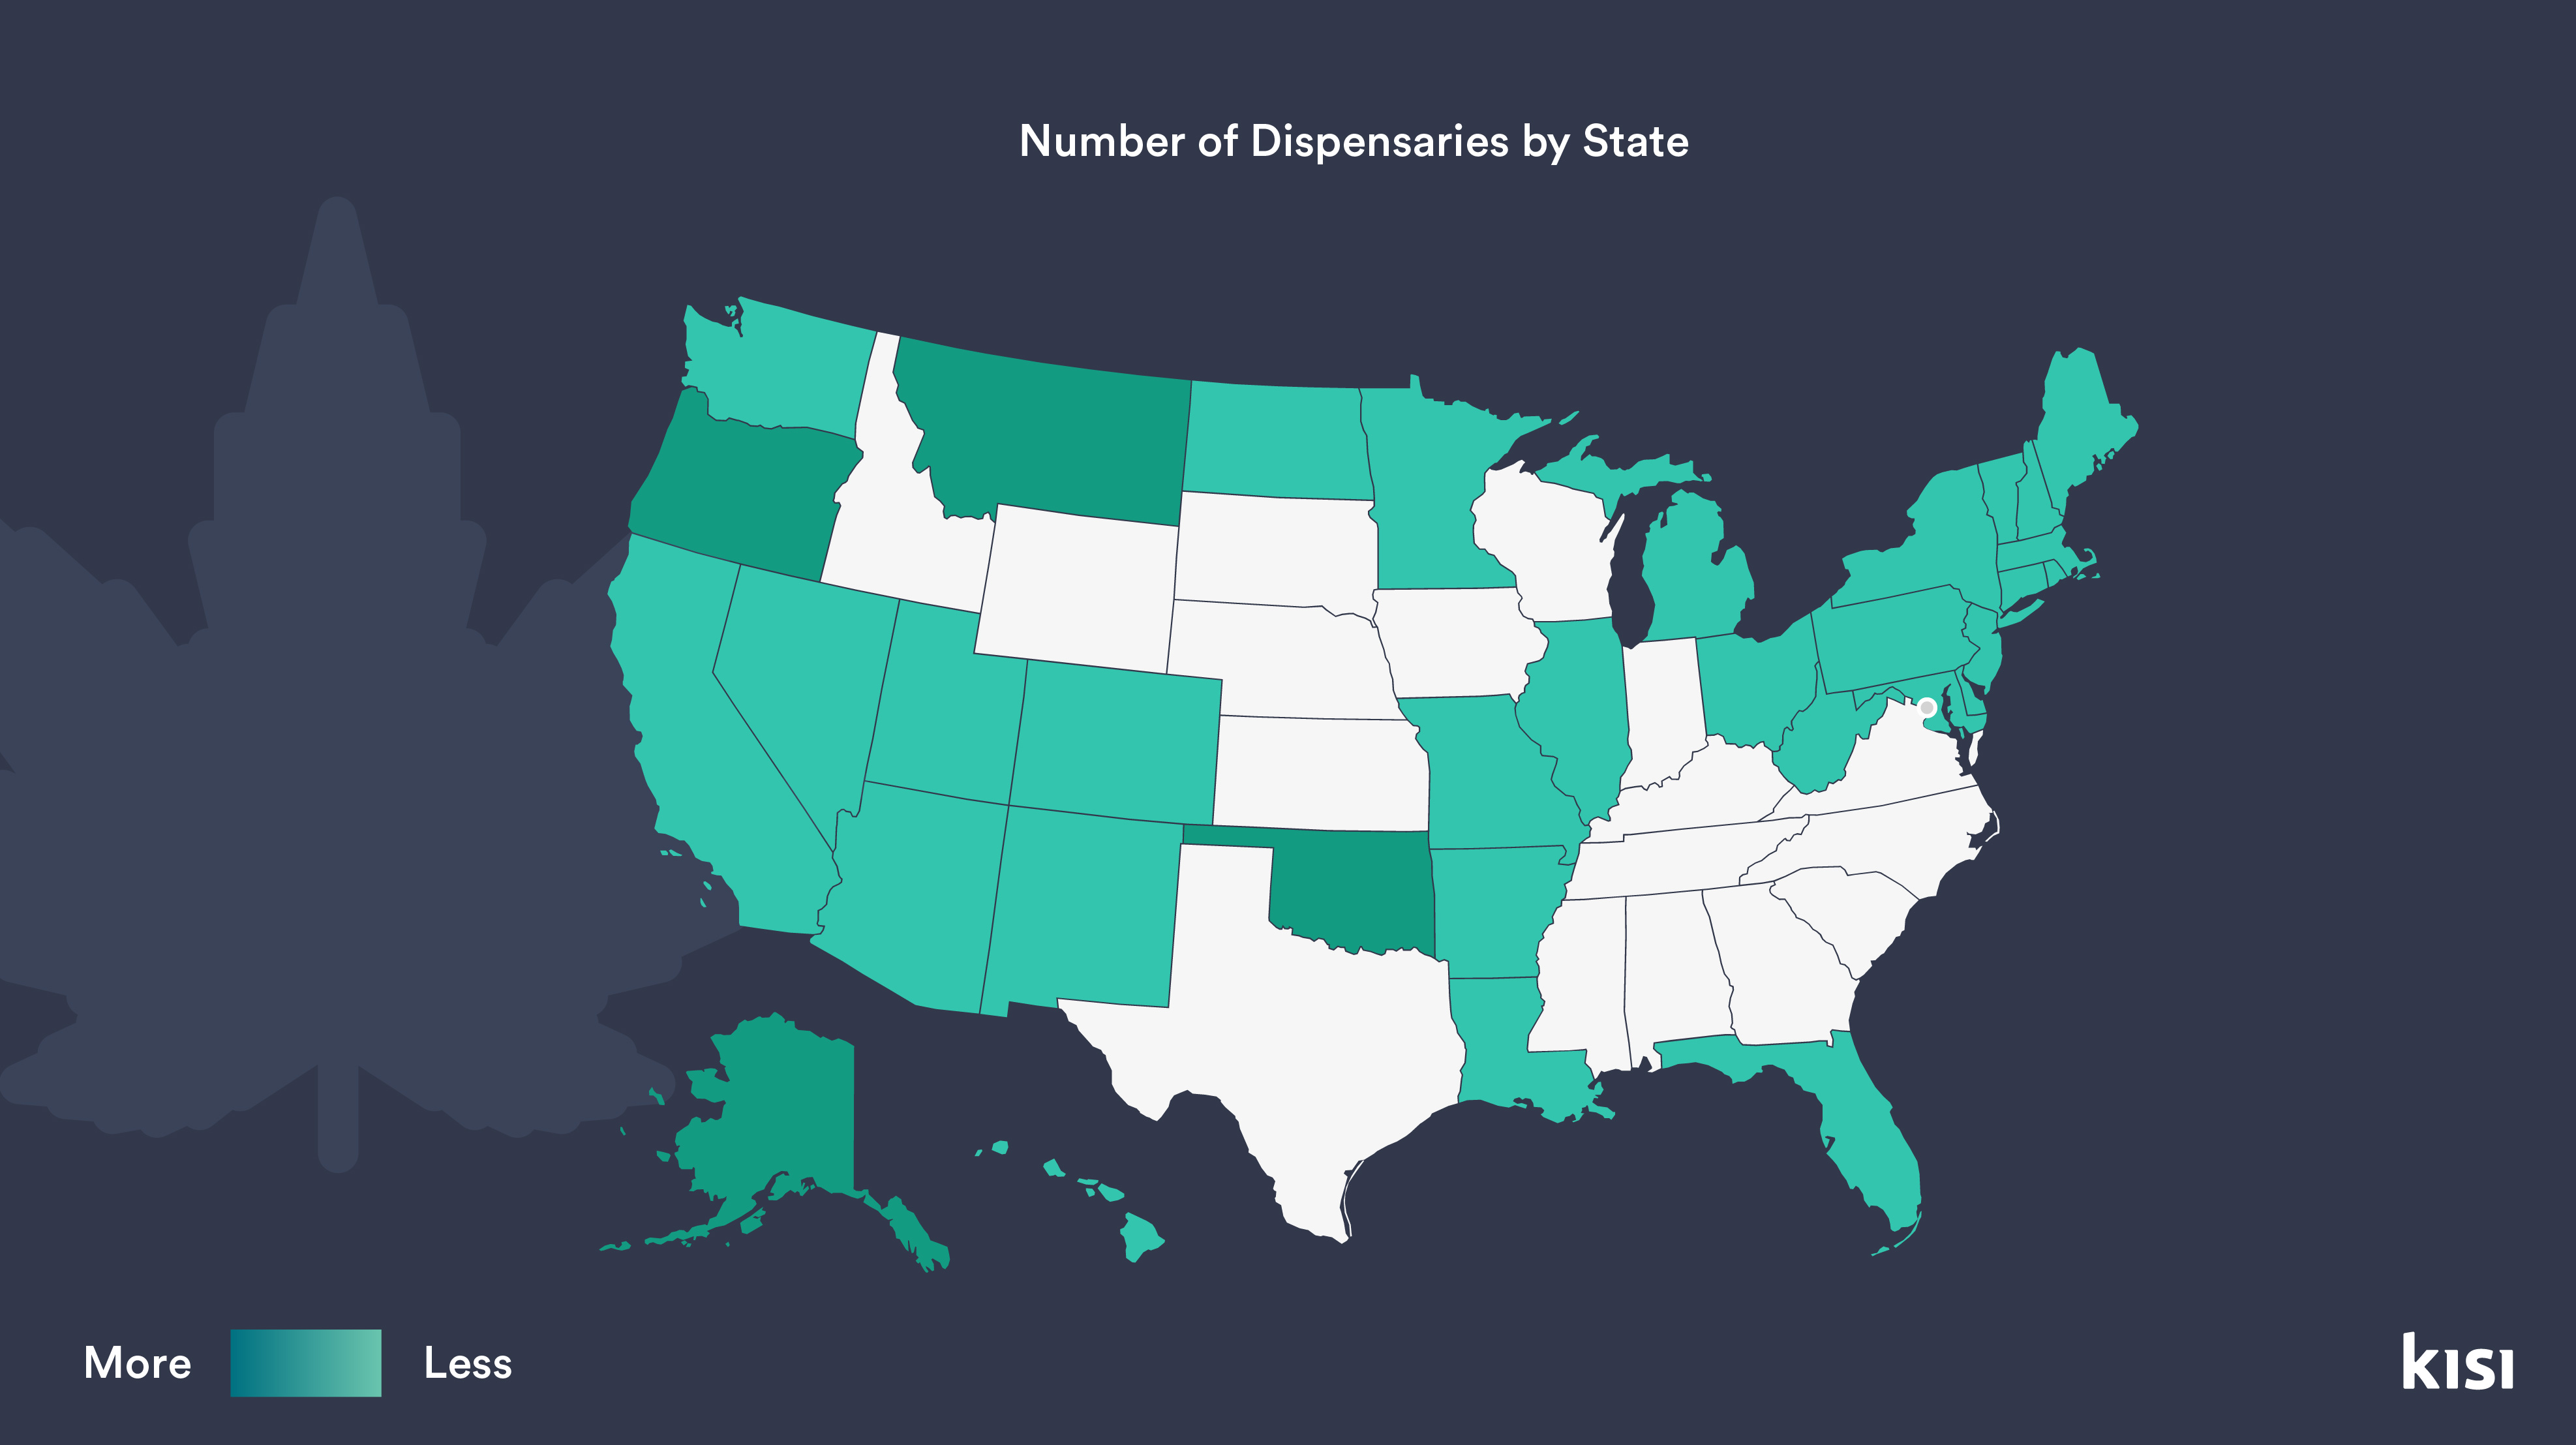 Number of dispensaries by state